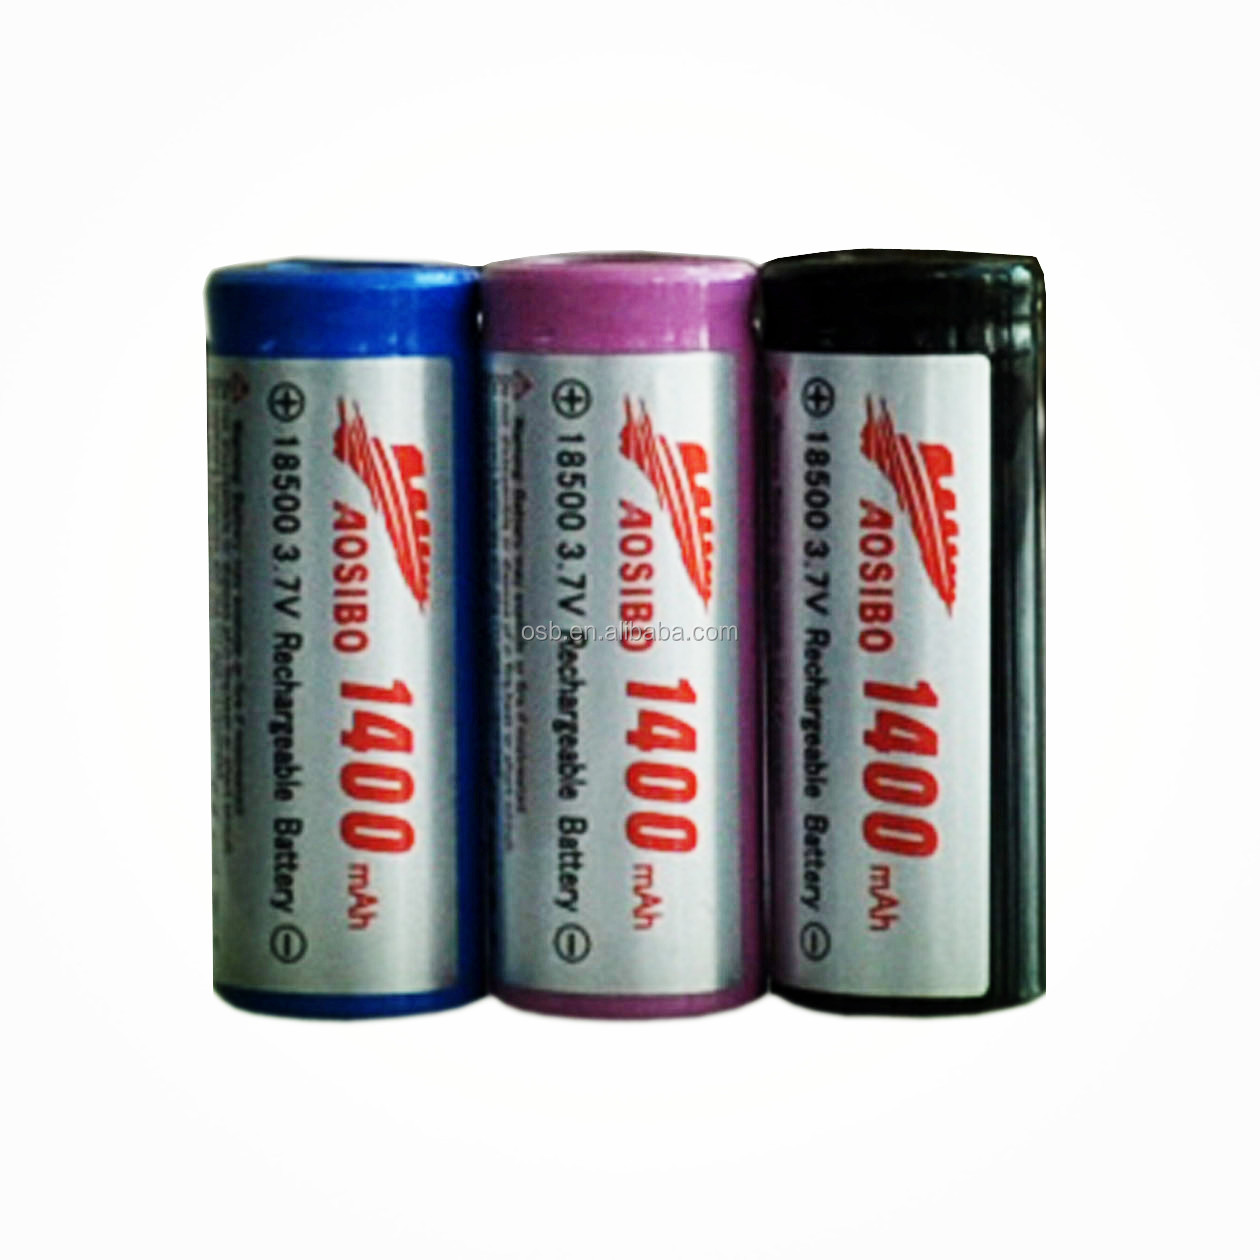 18500 lifepo4 rechargeable battery 18500/18500 rechargeable battery 3.7v 1400mah/18350 18500 18650 battery a mod/li-ion battery